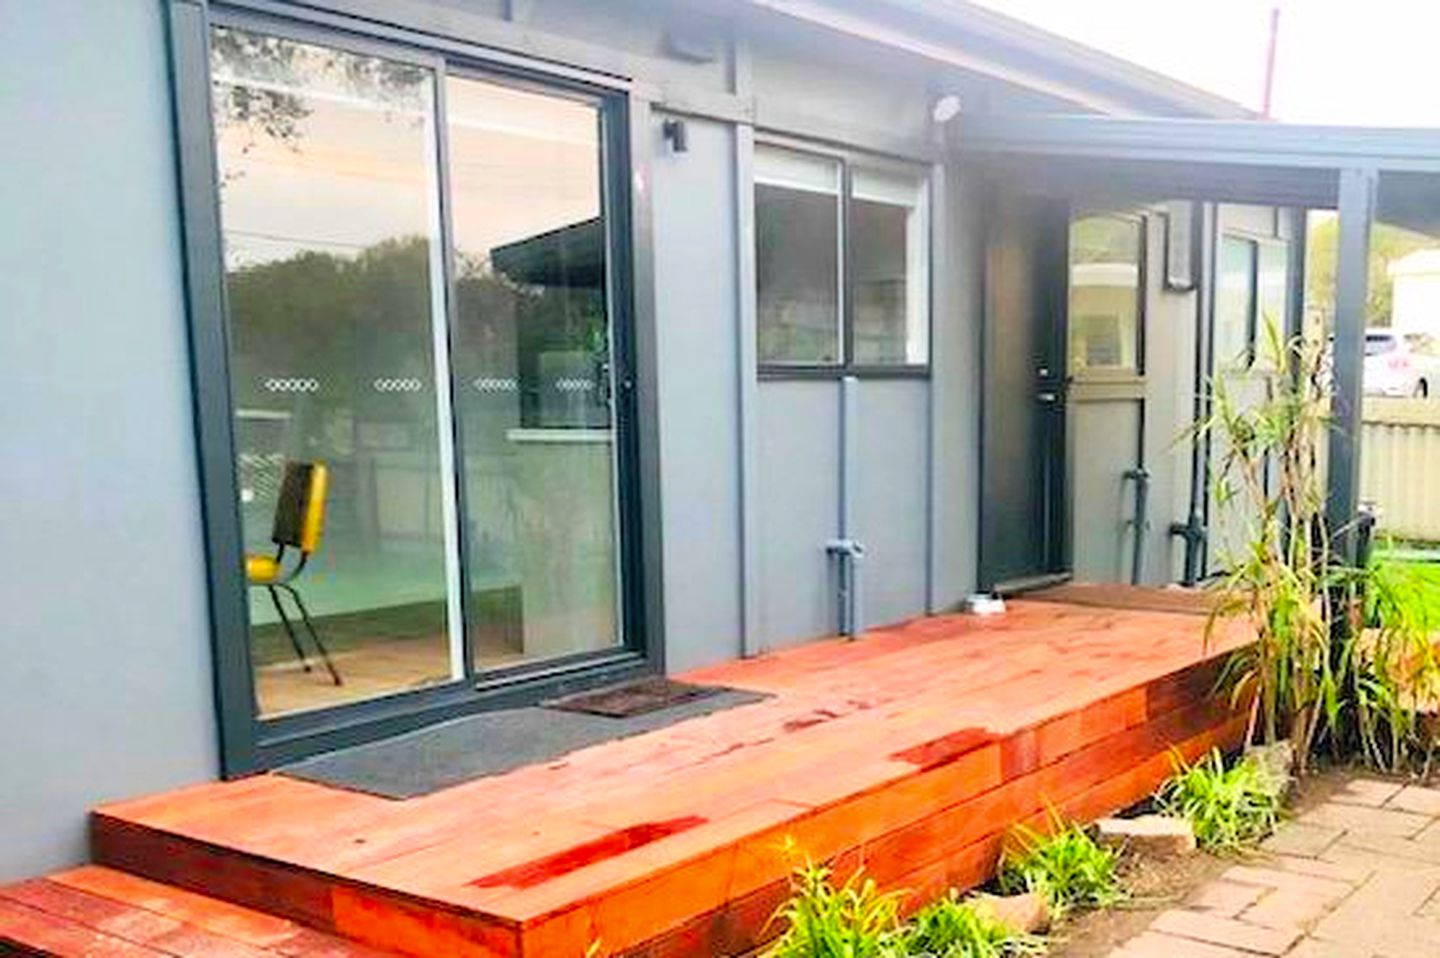 This Mornington Peninsula holiday accommodation boasts a lovely deck with a barbecue to host family getaways near Melbourne